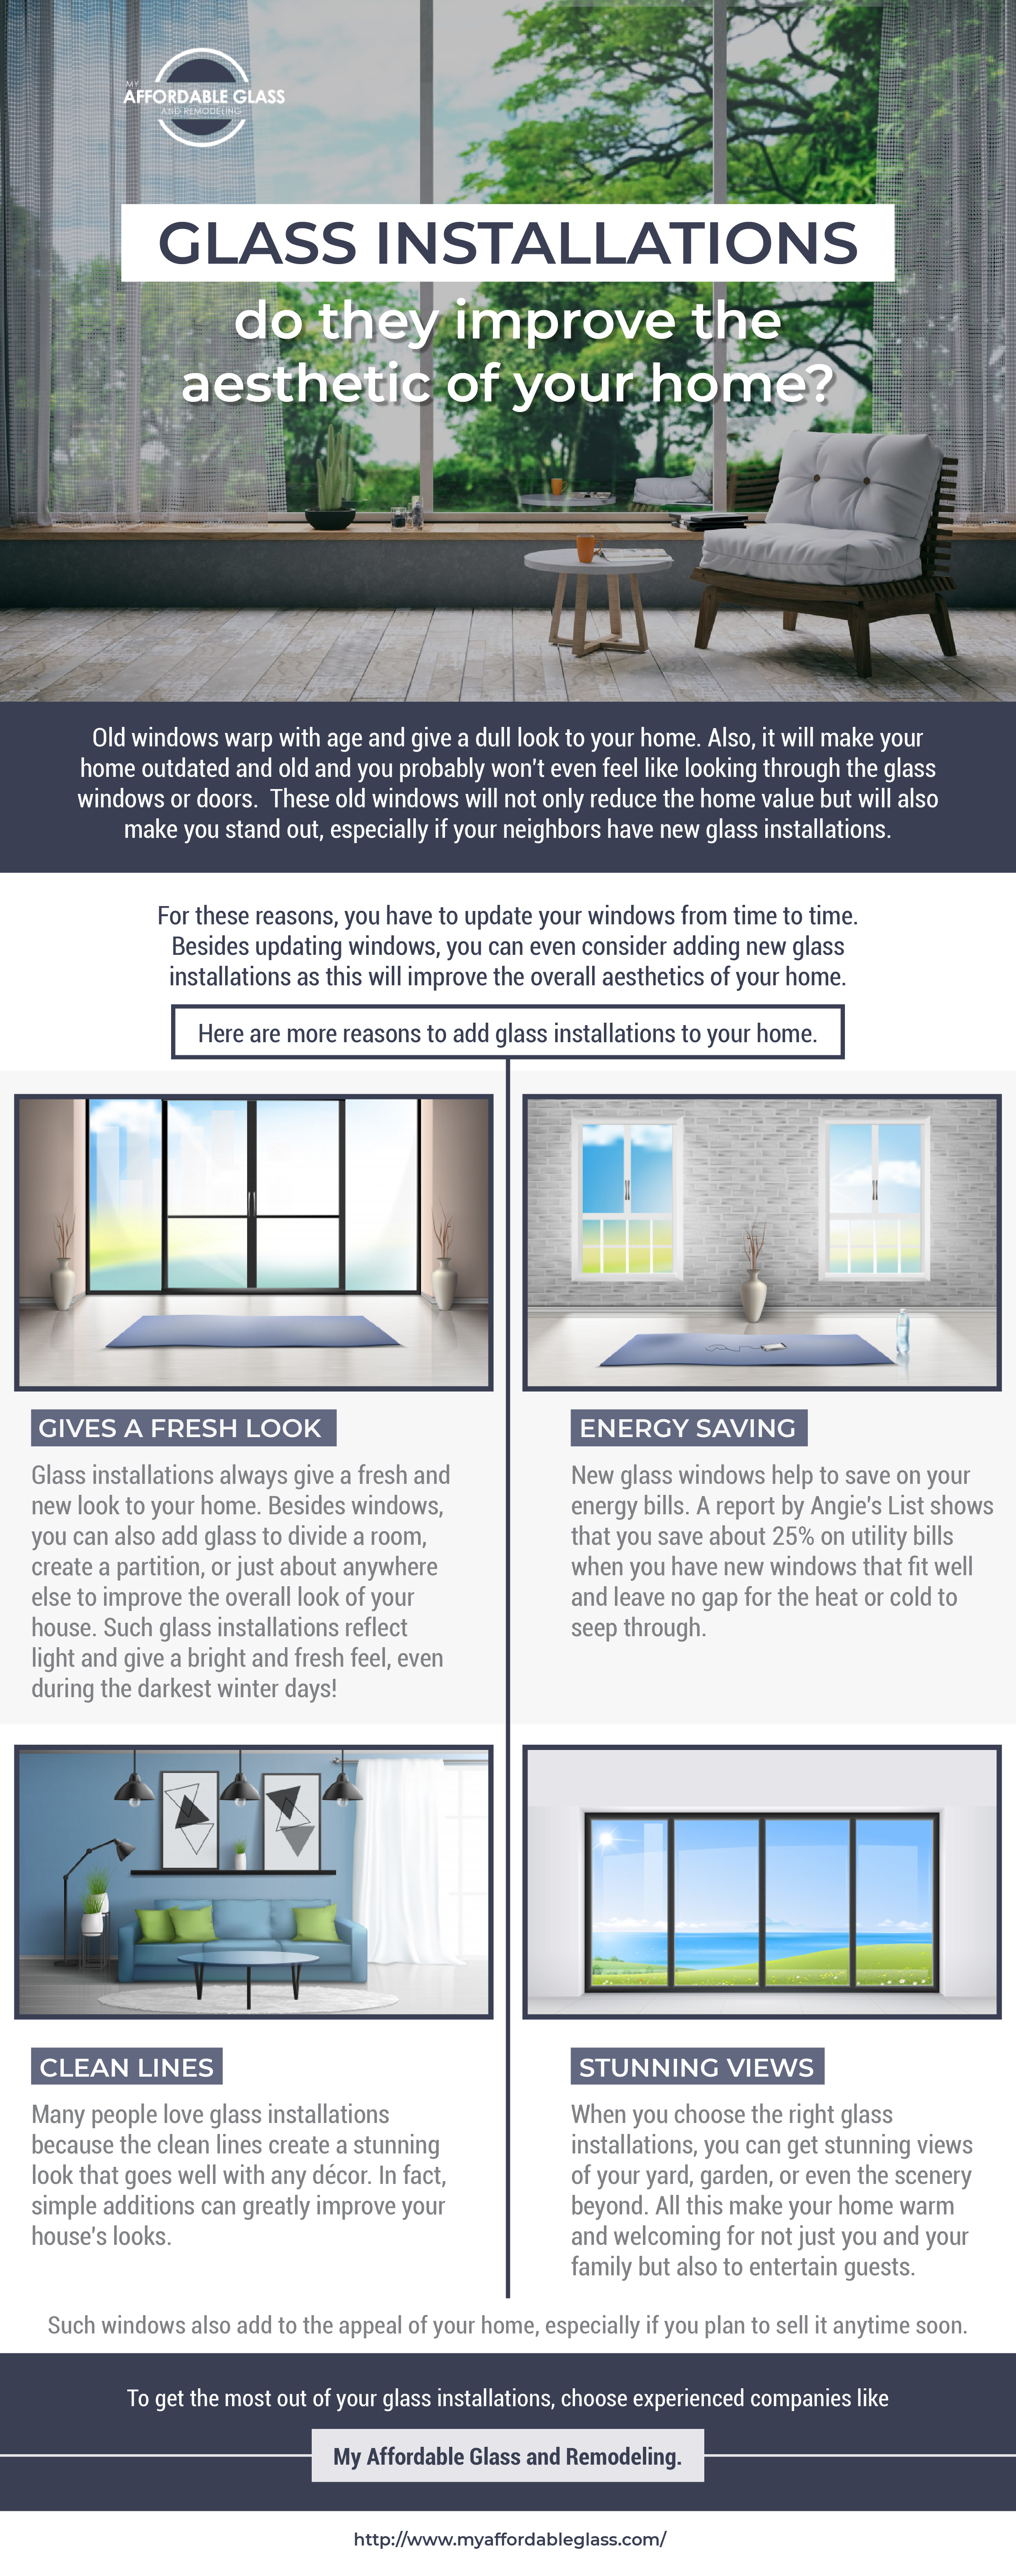 How do glass installations improve the aesthetics of your home?